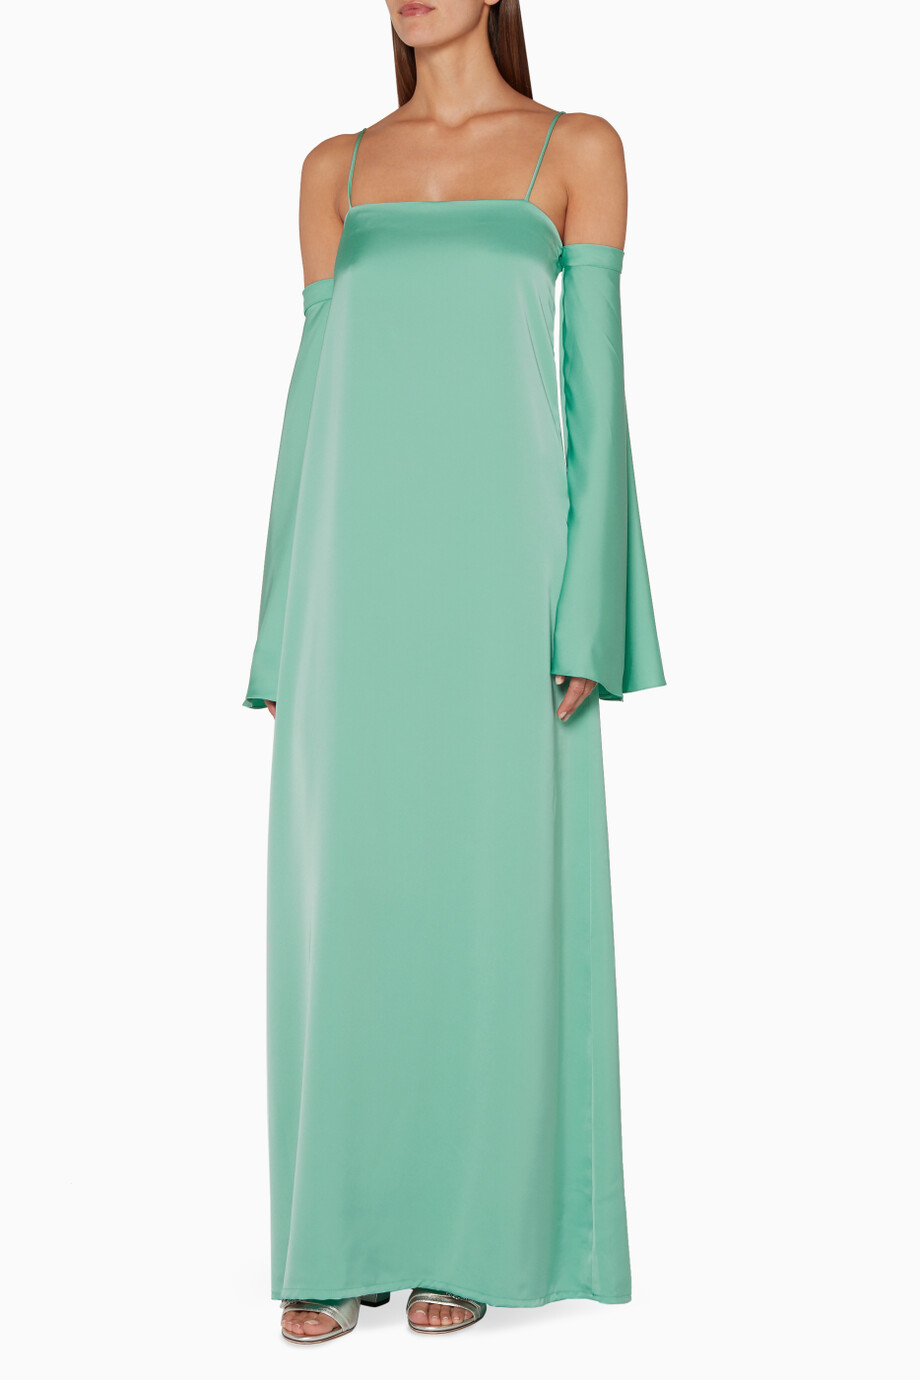 9ca8e3a88813 Shop Nora Al Shaikh Green Green Tiffany Off-The-Shoulder Dress for ...